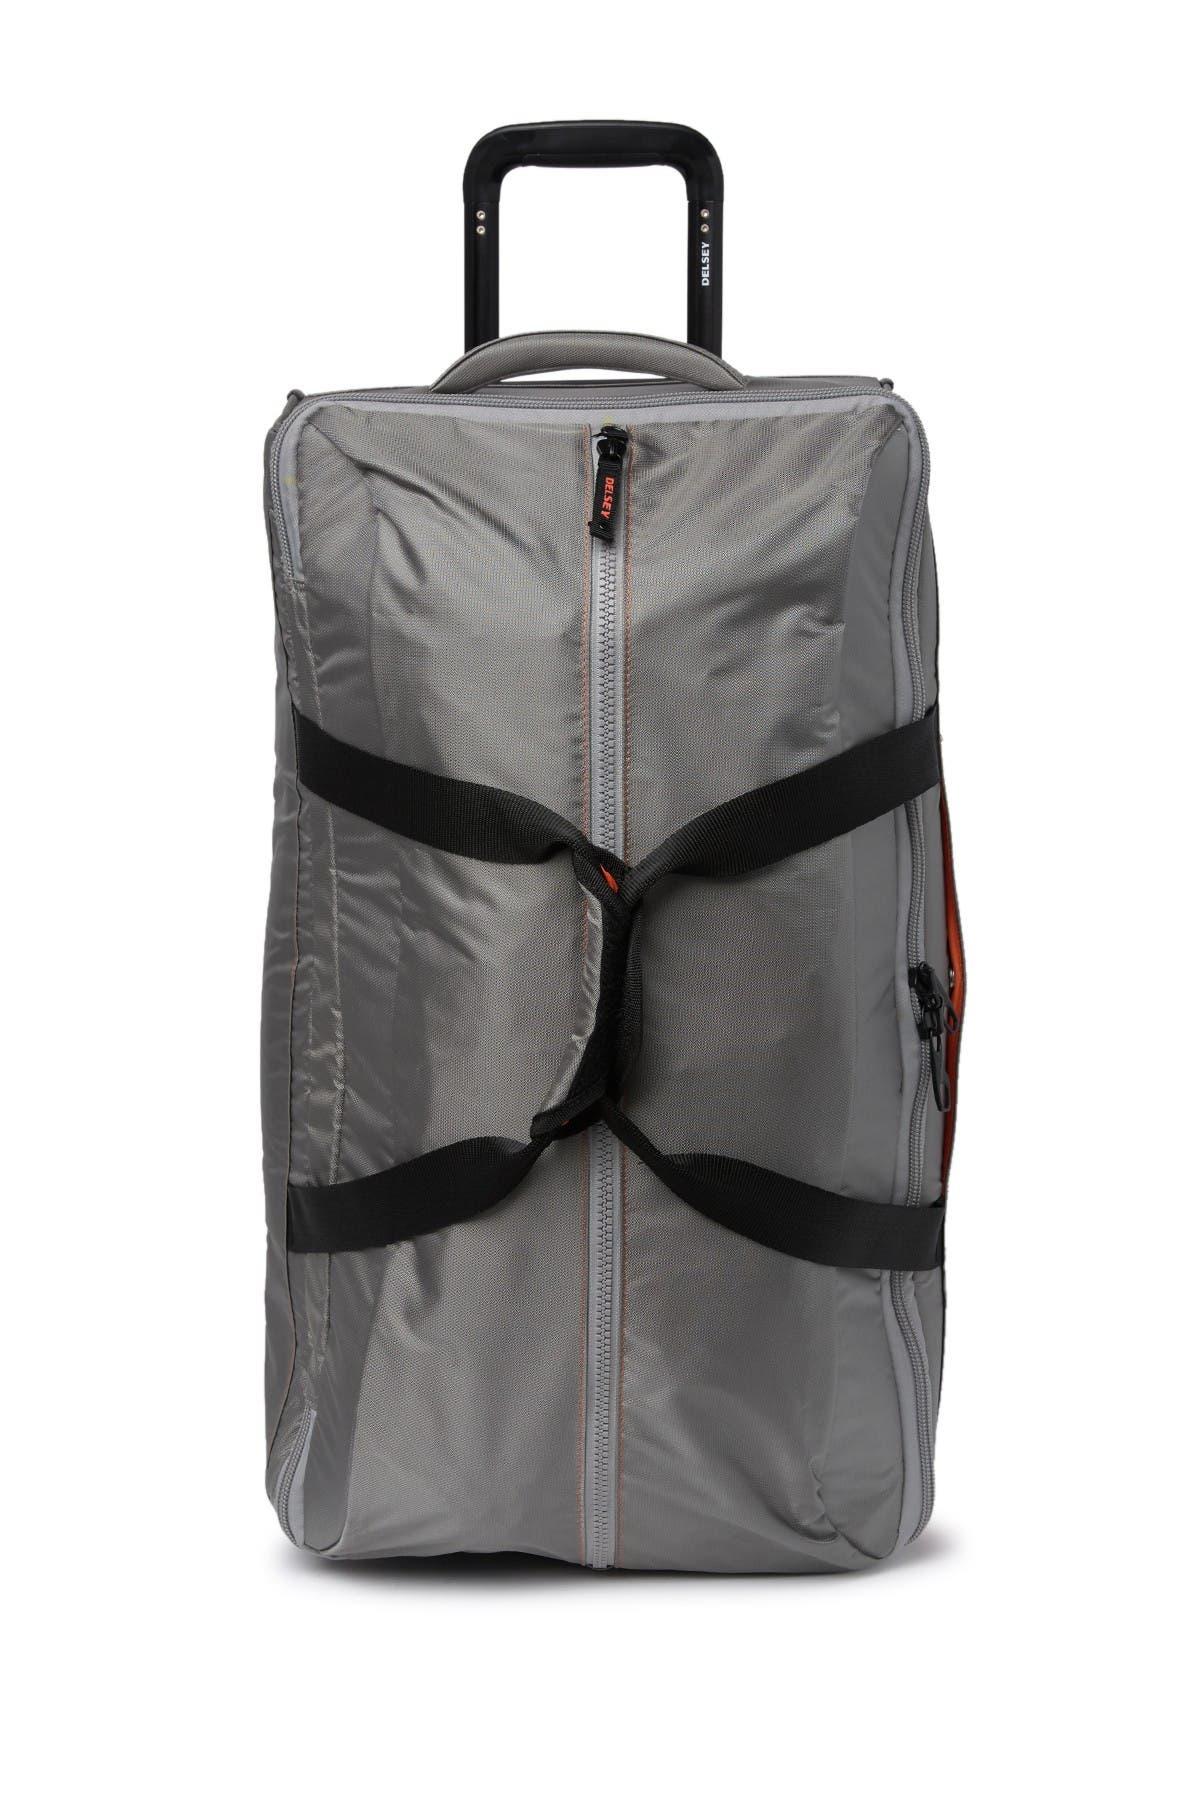 Image of DELSEY Egoa Recycled Trolley Duffel Bag